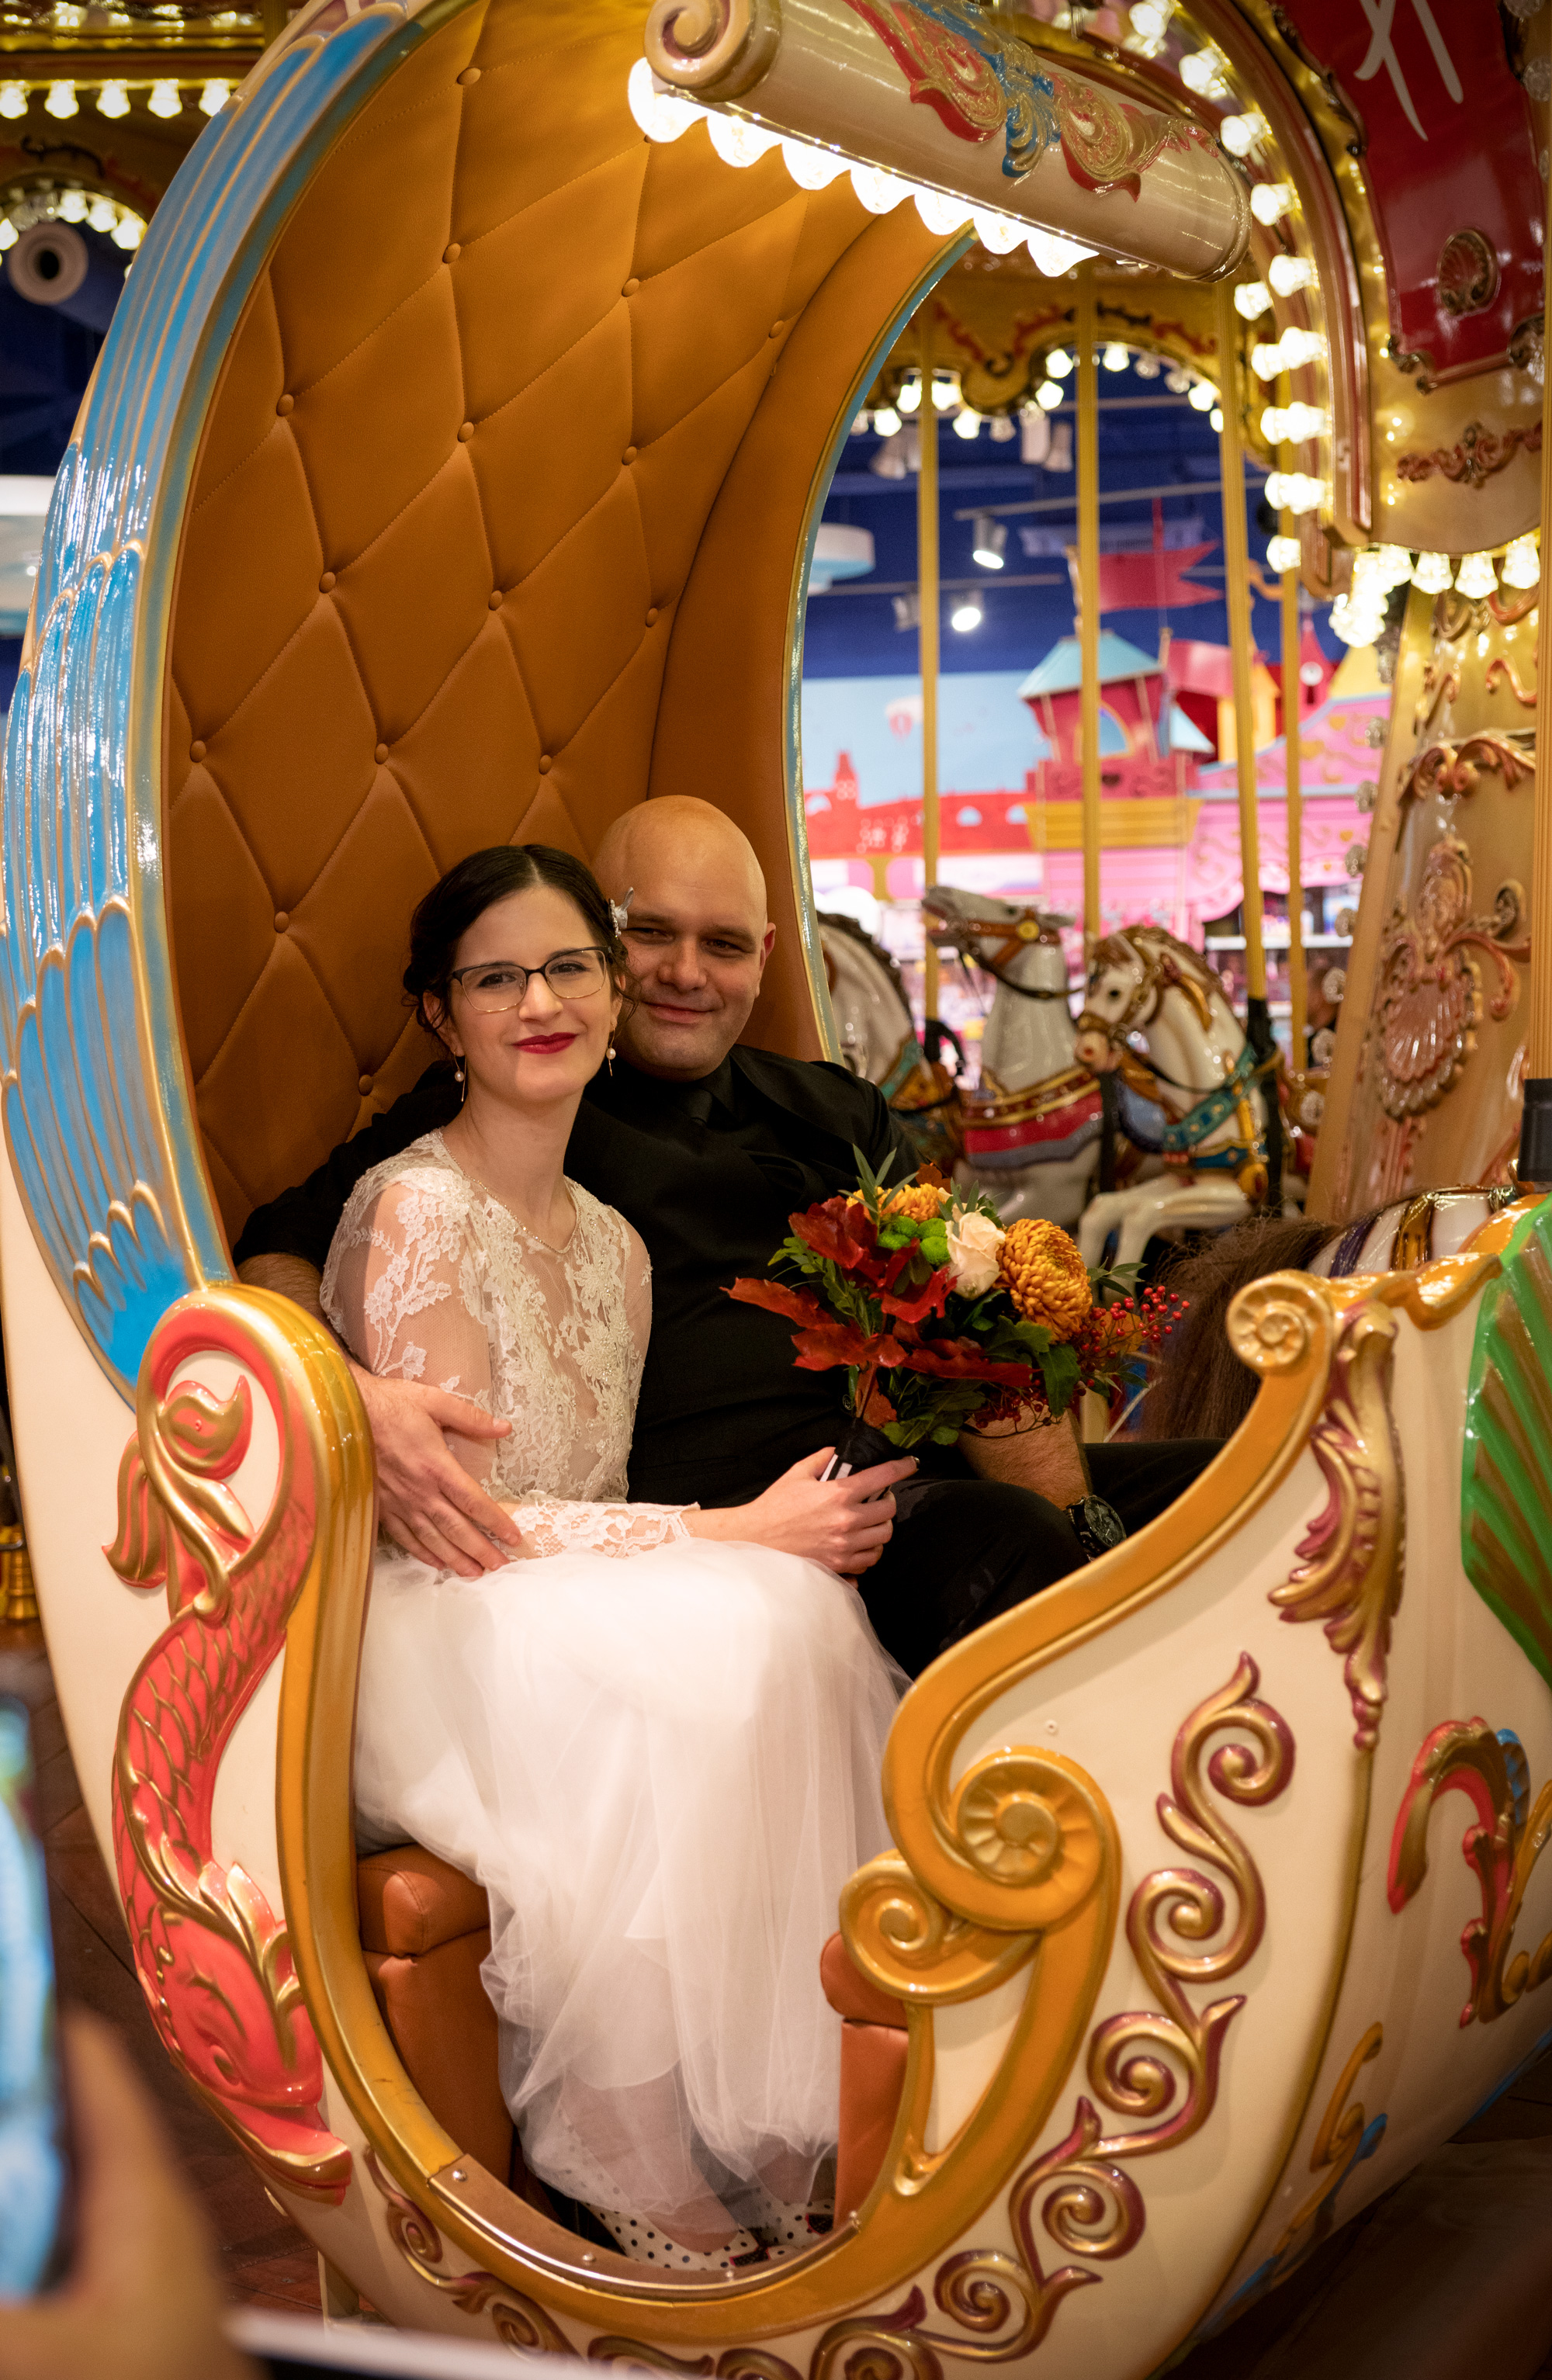 Bride and groom on a carousel carriage with lights